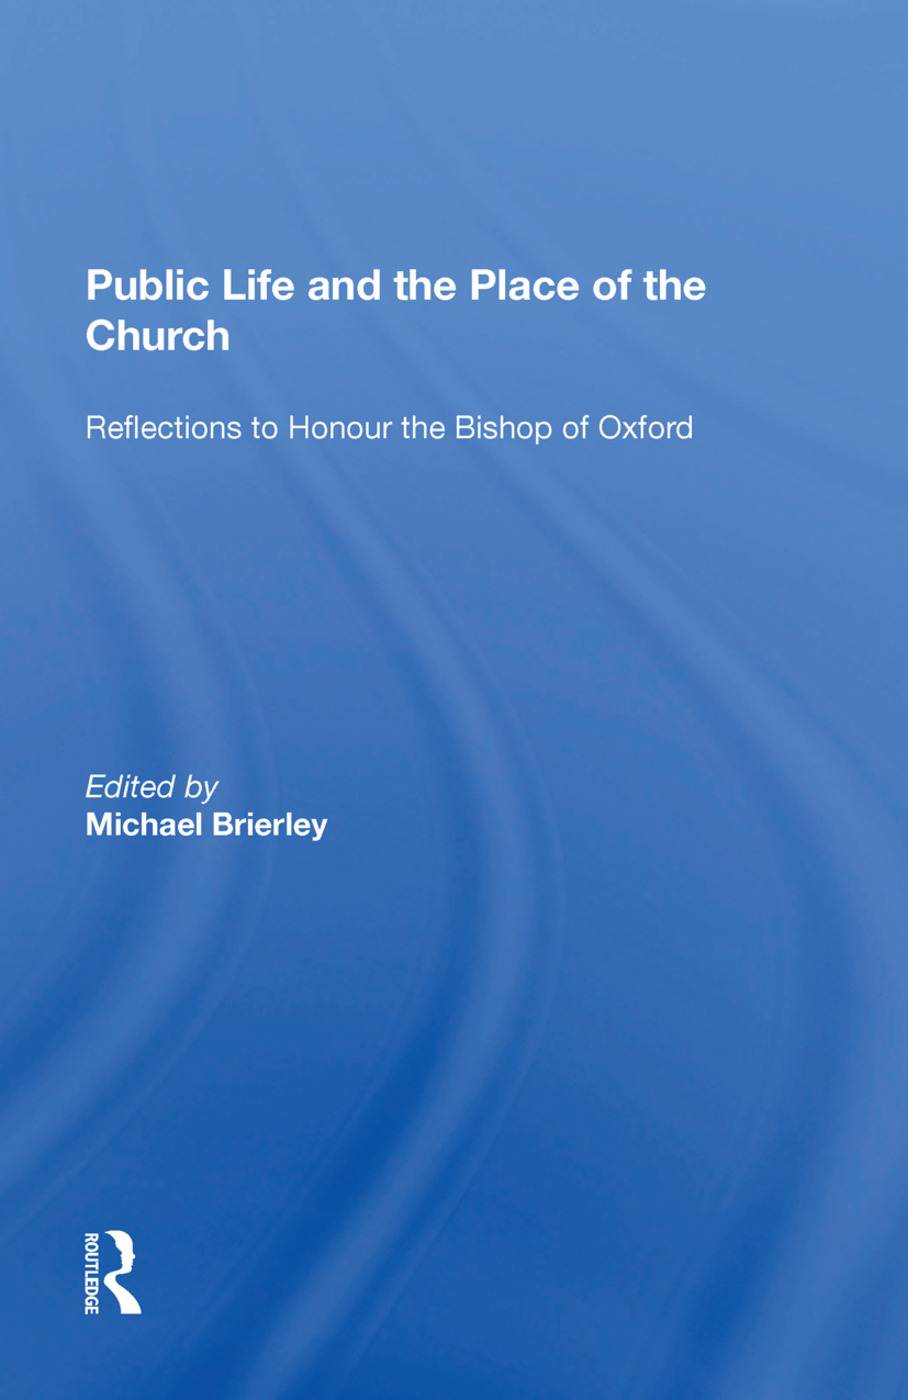 Public Life and the Place of the Church: Reflections to Honour the Bishop of Oxford book cover